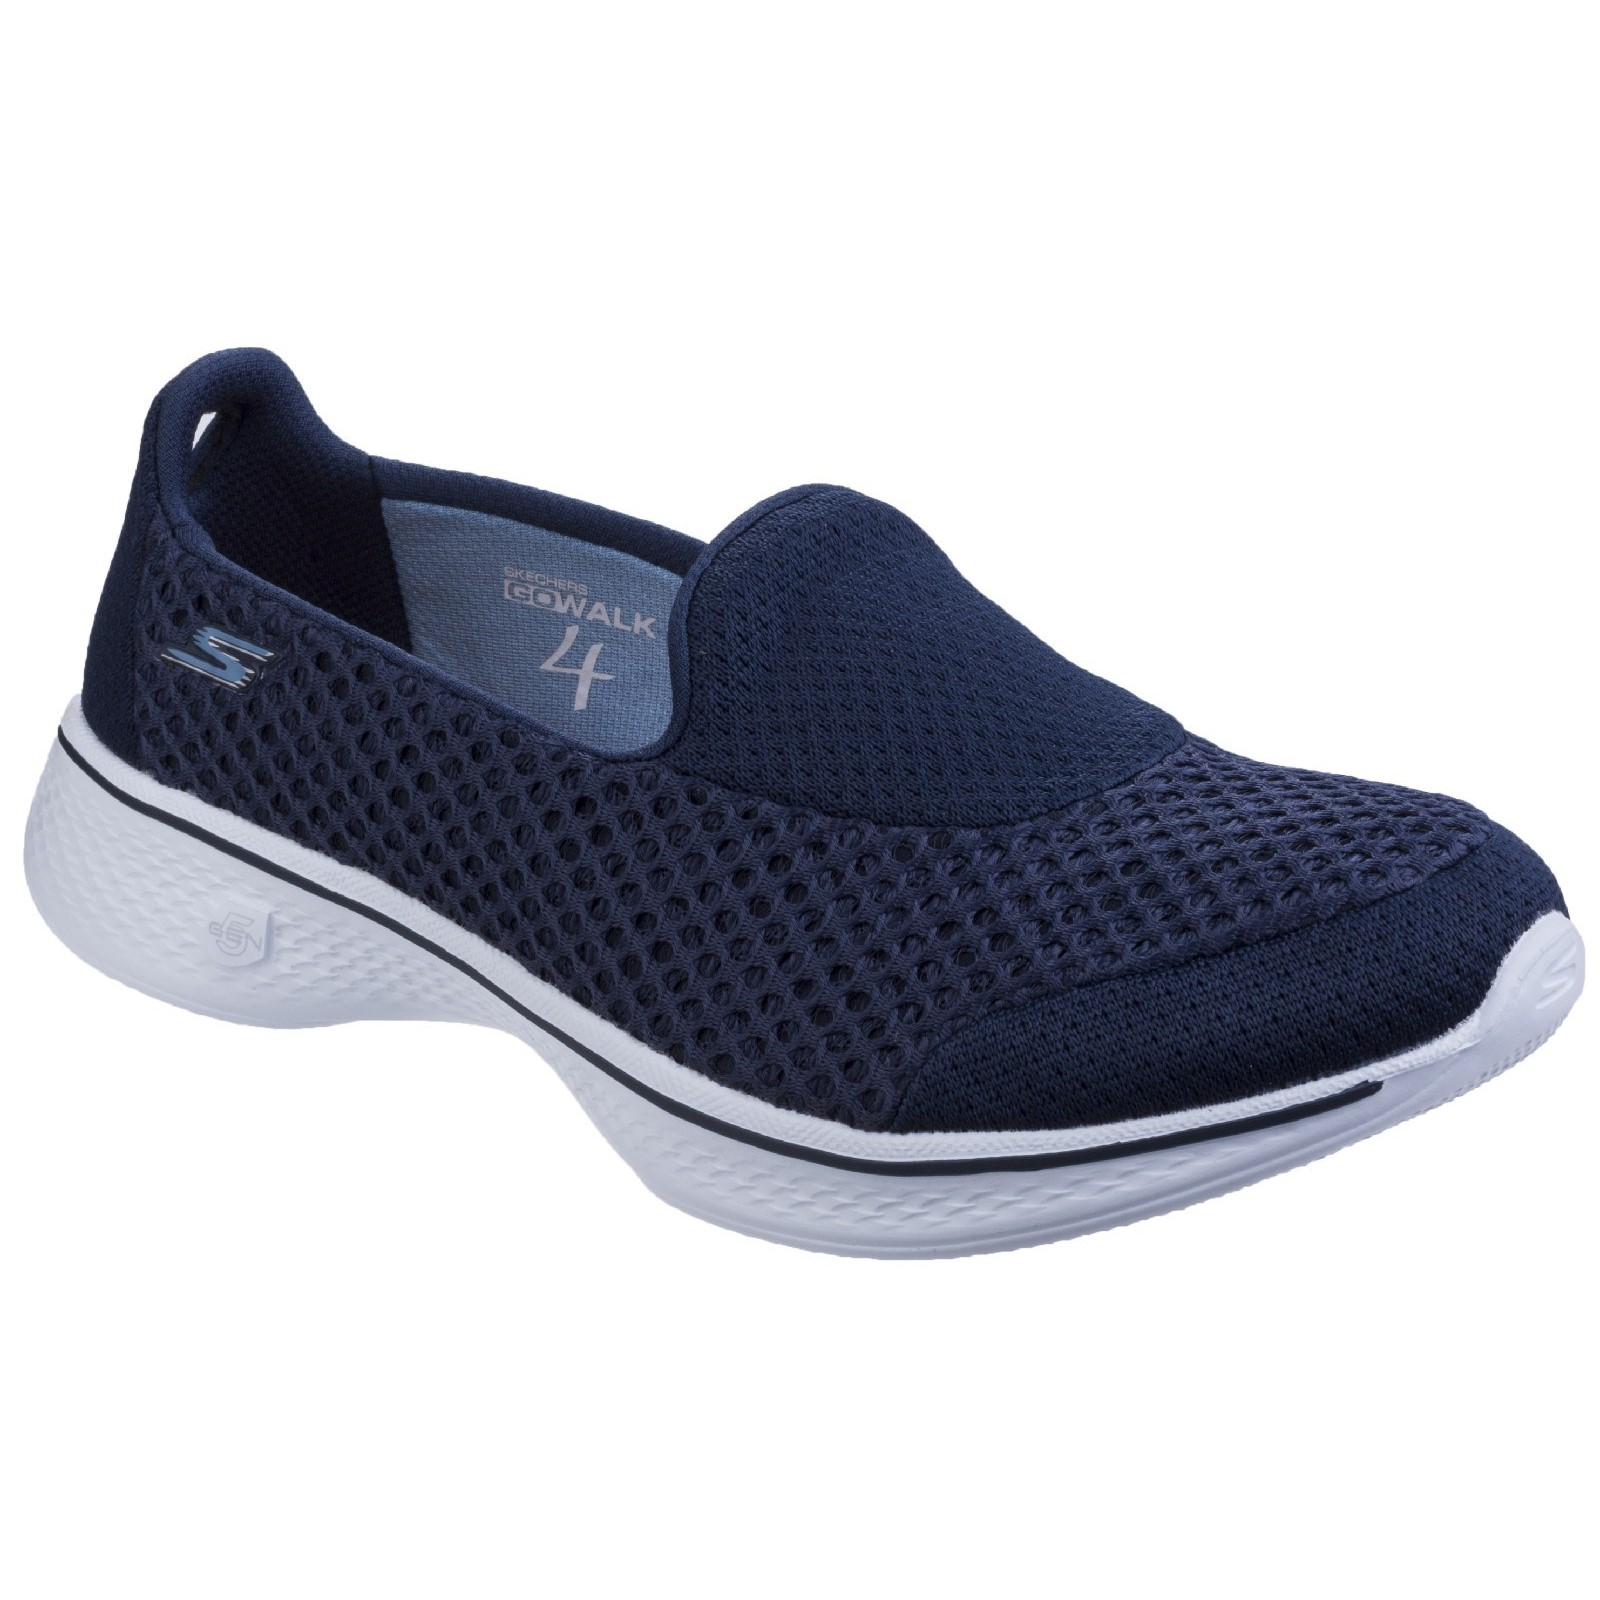 Skechers Womens Go Walk 4 Kindle Slip On shoes Navy White Size UK 3 EU 36